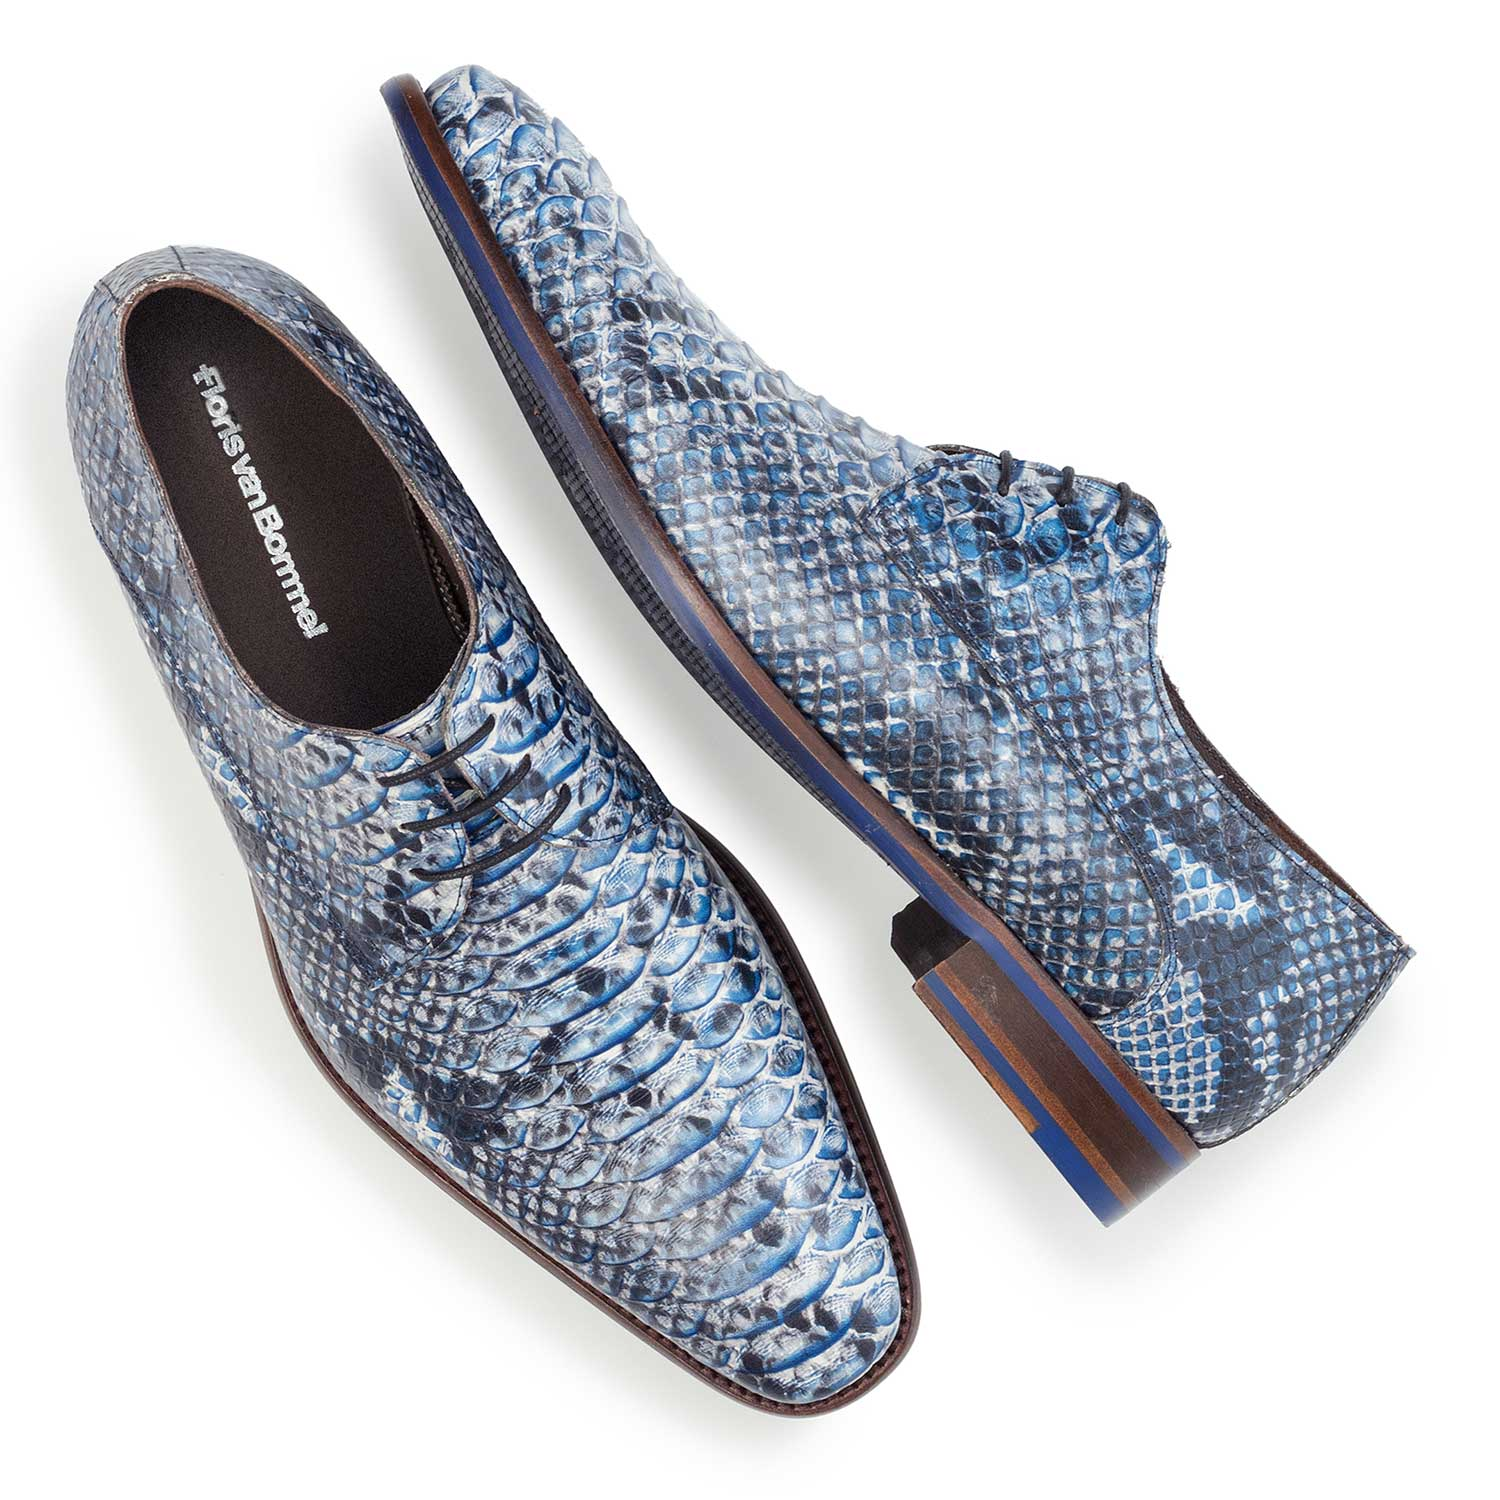 14204/03 - Blue leather lace shoe finished with a snake print